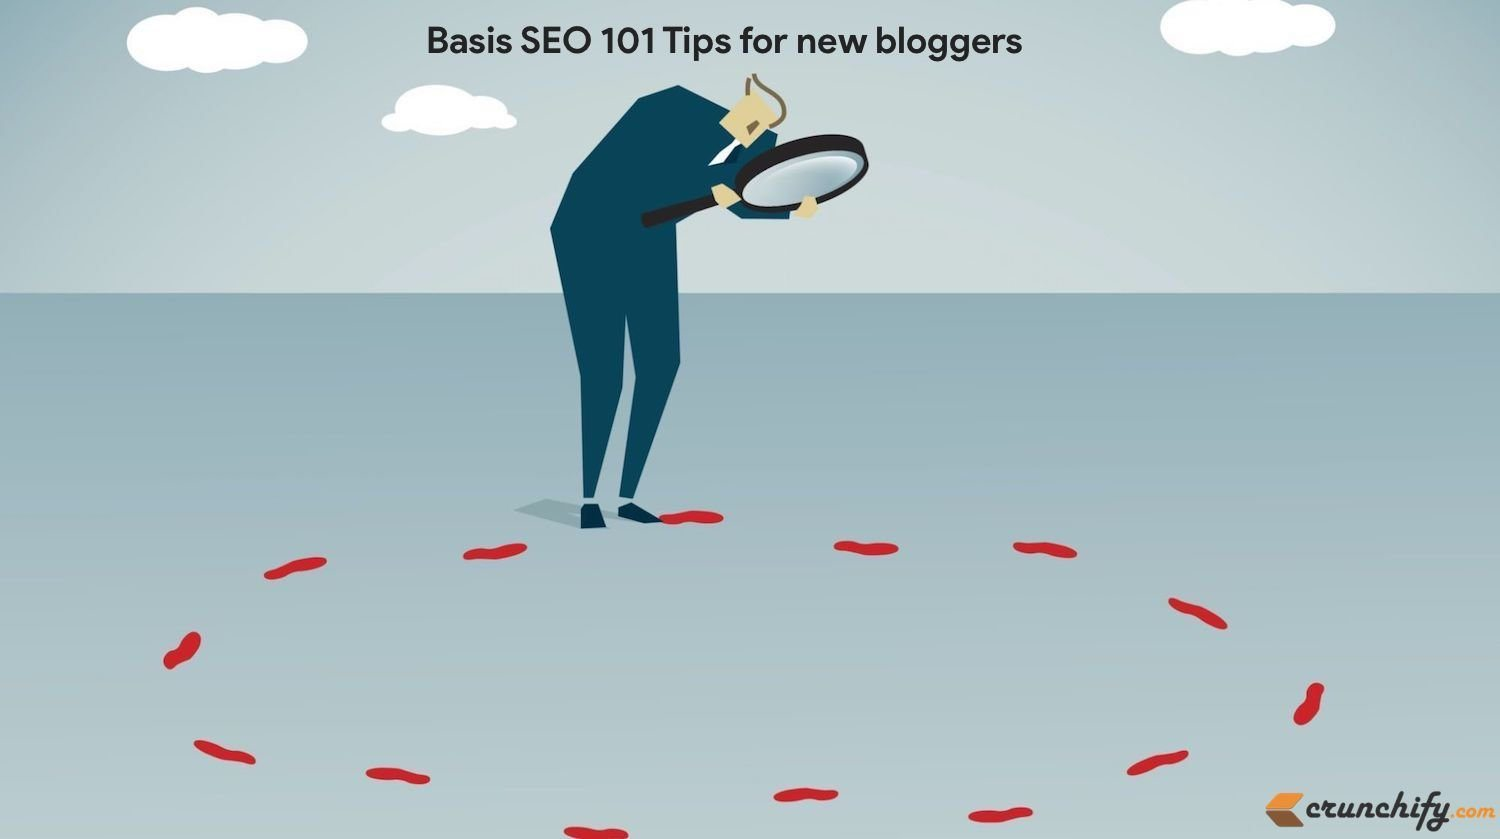 Basis SEO 101 Tips for new bloggers